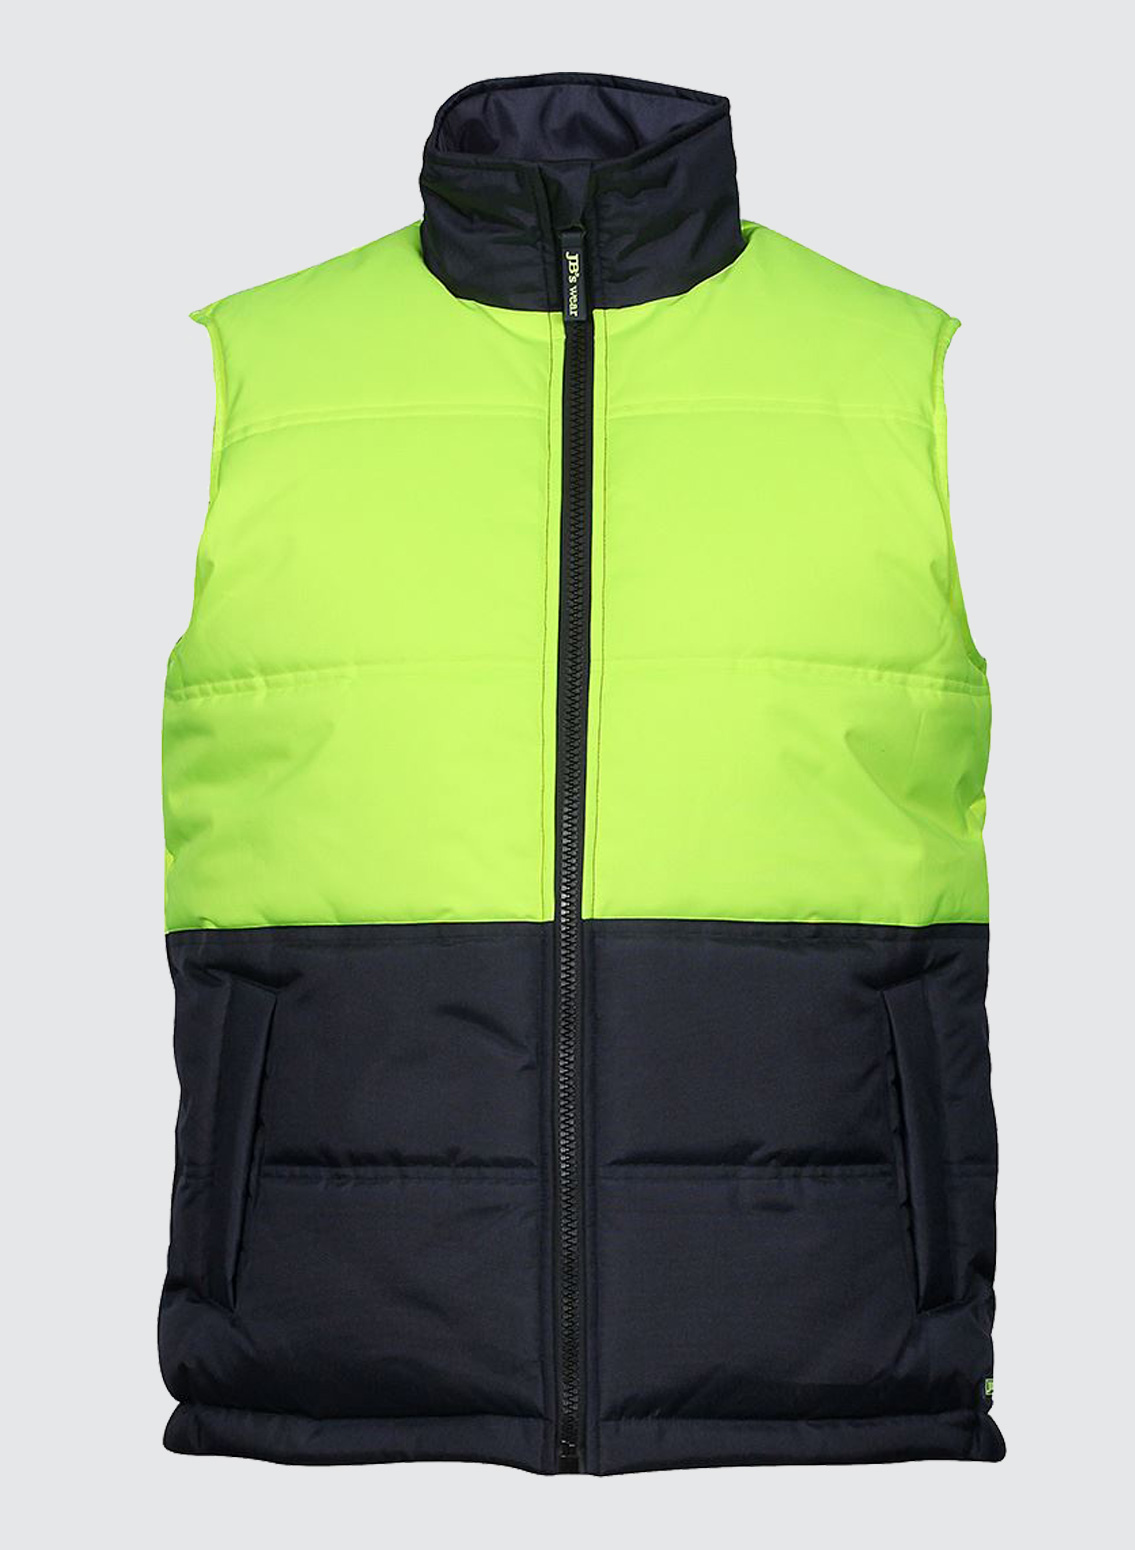 6hrpv Hi Vis Puffer Vest Business Image Group